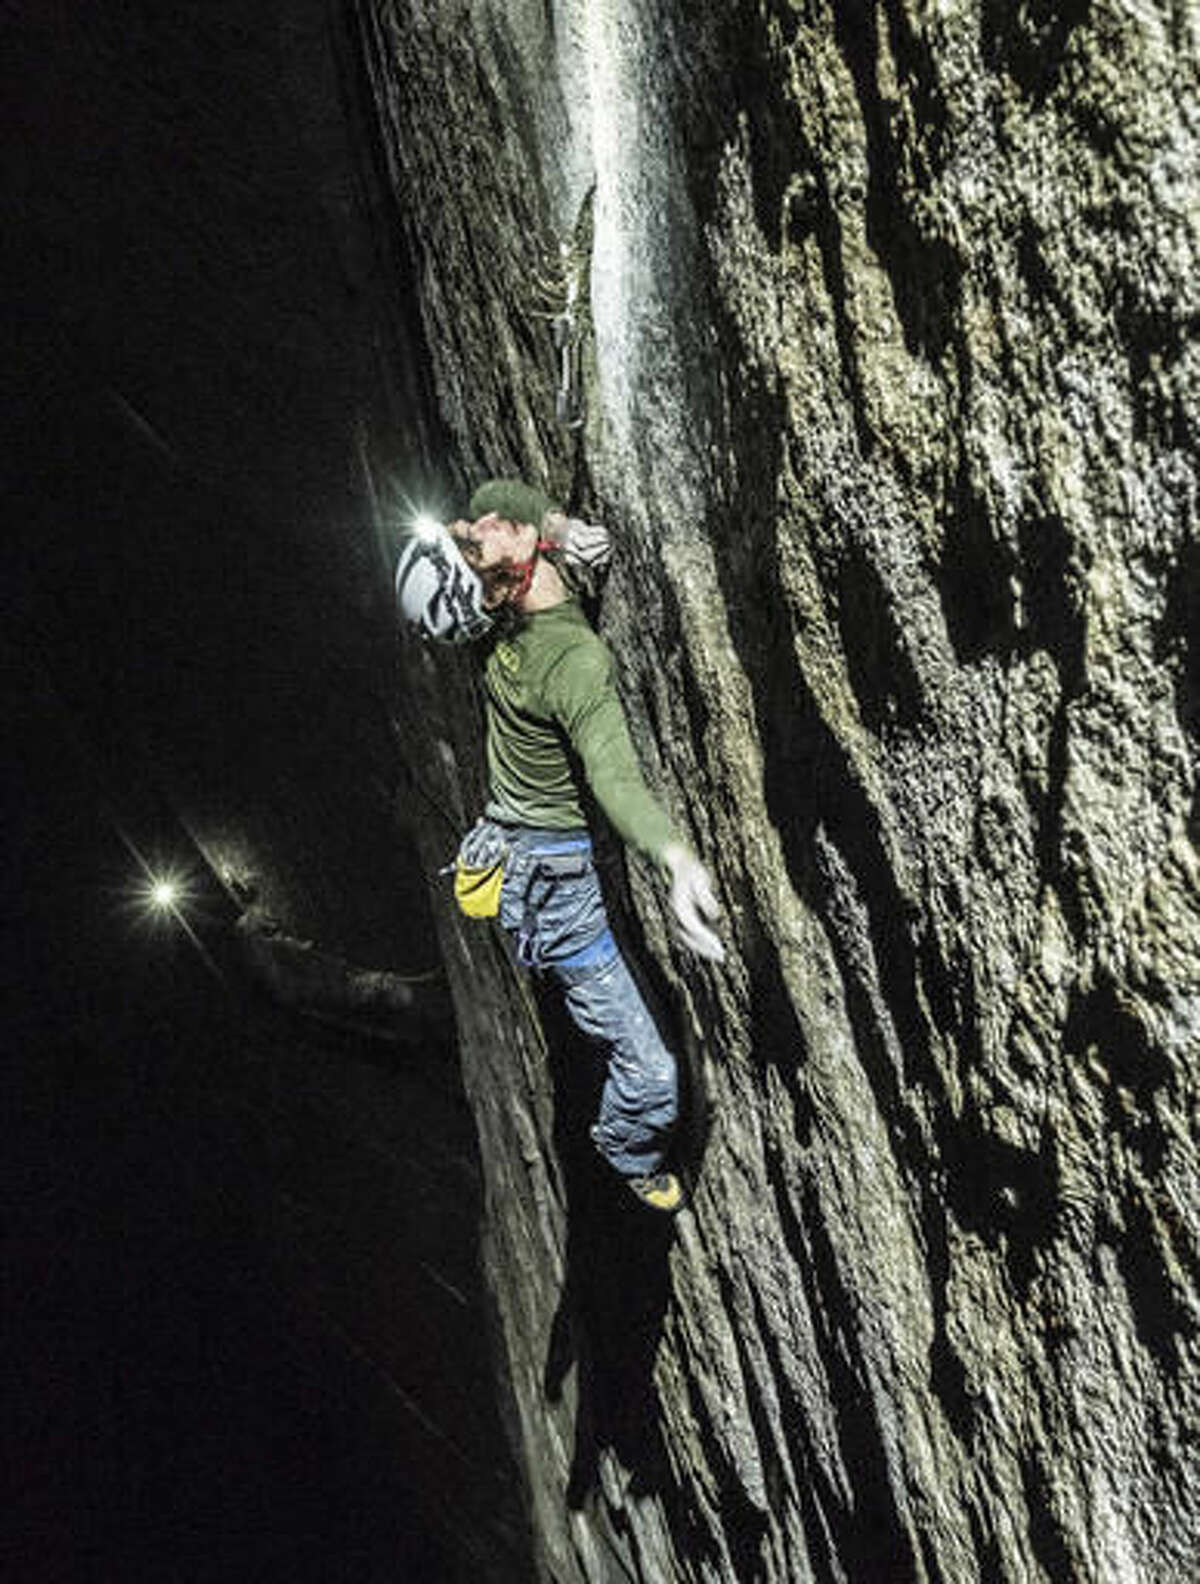 In this November 2016 photo courtesy of Heinz Zak and Black Diamond Equipment, Adam Ondra climbs pitch 21 by headlamp on the Dawn Wall of El Capitan in Yosemite National Park, Calif. A climber from the Czech Republic has scaled what's considered one of the world's most challenging rock walls found in Yosemite National Park, doing it in record time. A spokesman for Black Diamond Equipment confirmed Tuesday, Nov. 22, 2016, that 23-year-old Adam Ondra completed a half-mile free-climb up the Dawn Wall on the famous El Capitan. (Heinz Zak/Courtesy of Black Diamond Equipment via AP)